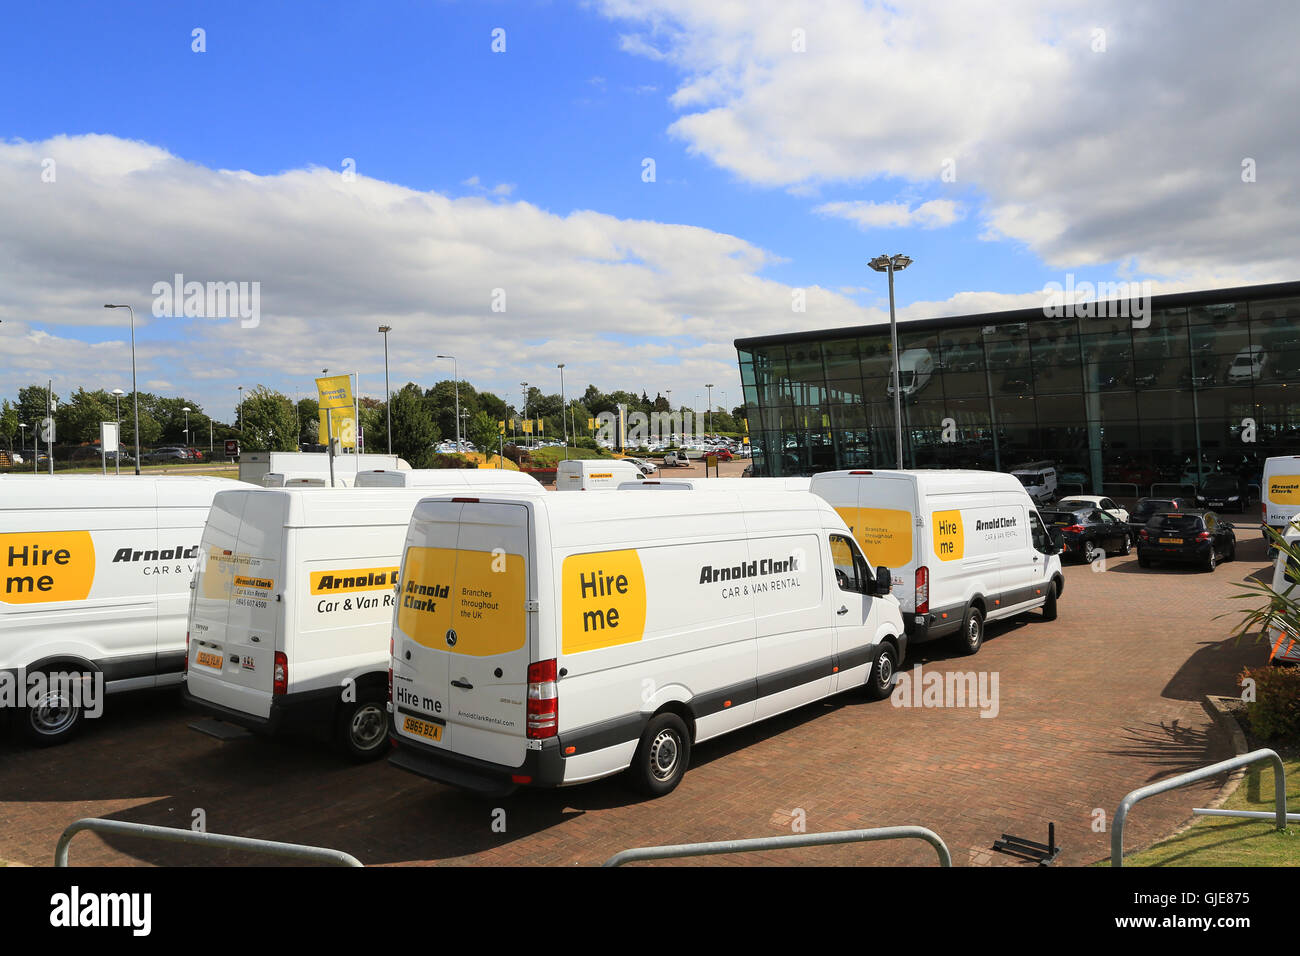 Arnold Clarke vans for hire at their Stafford site - Stock Image